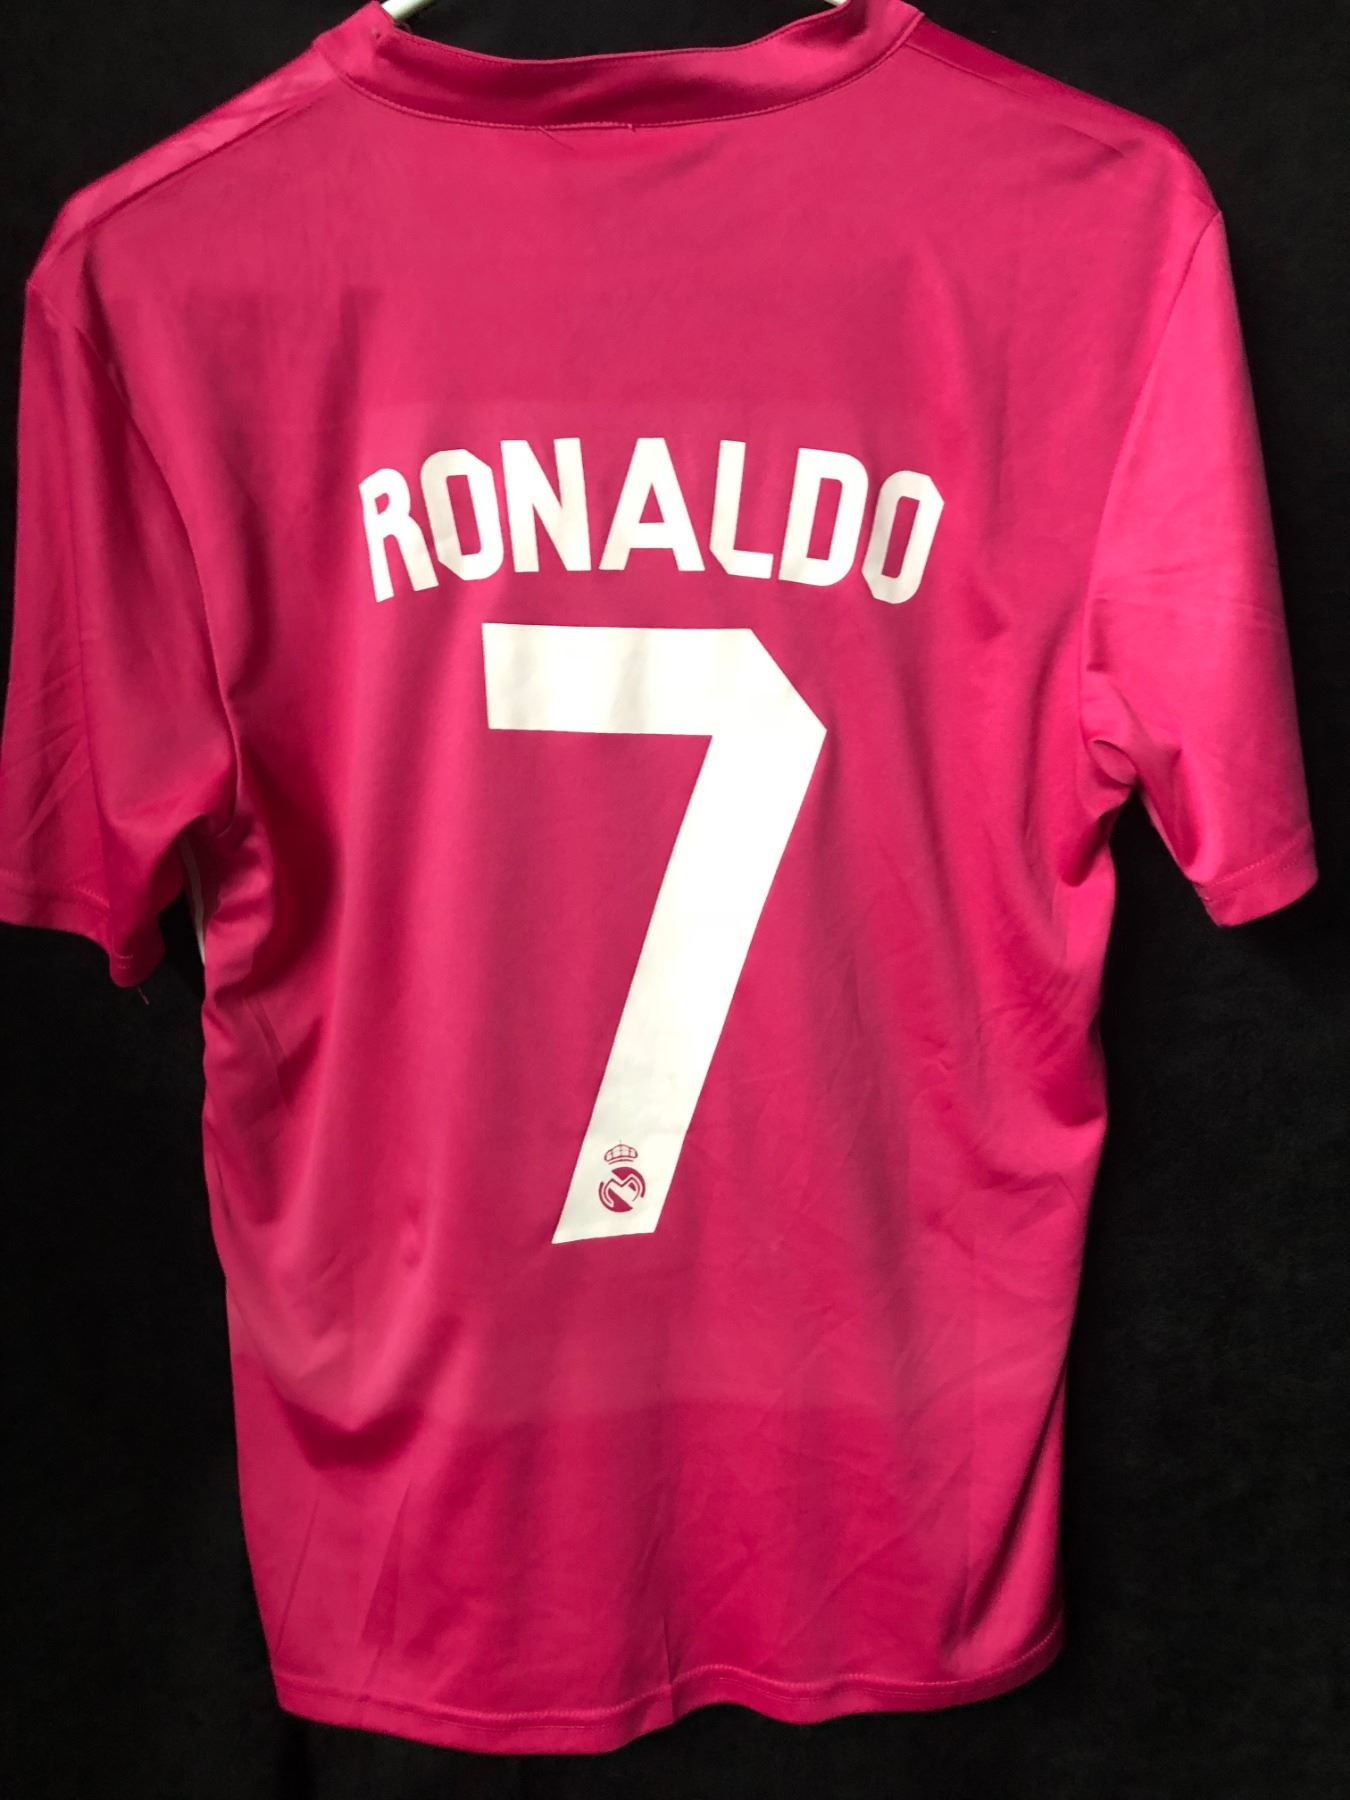 finest selection 37ed1 63d49 Cristiano Ronaldo Real Madrid Fly Emirates Pink Soccer Jersey (Small)